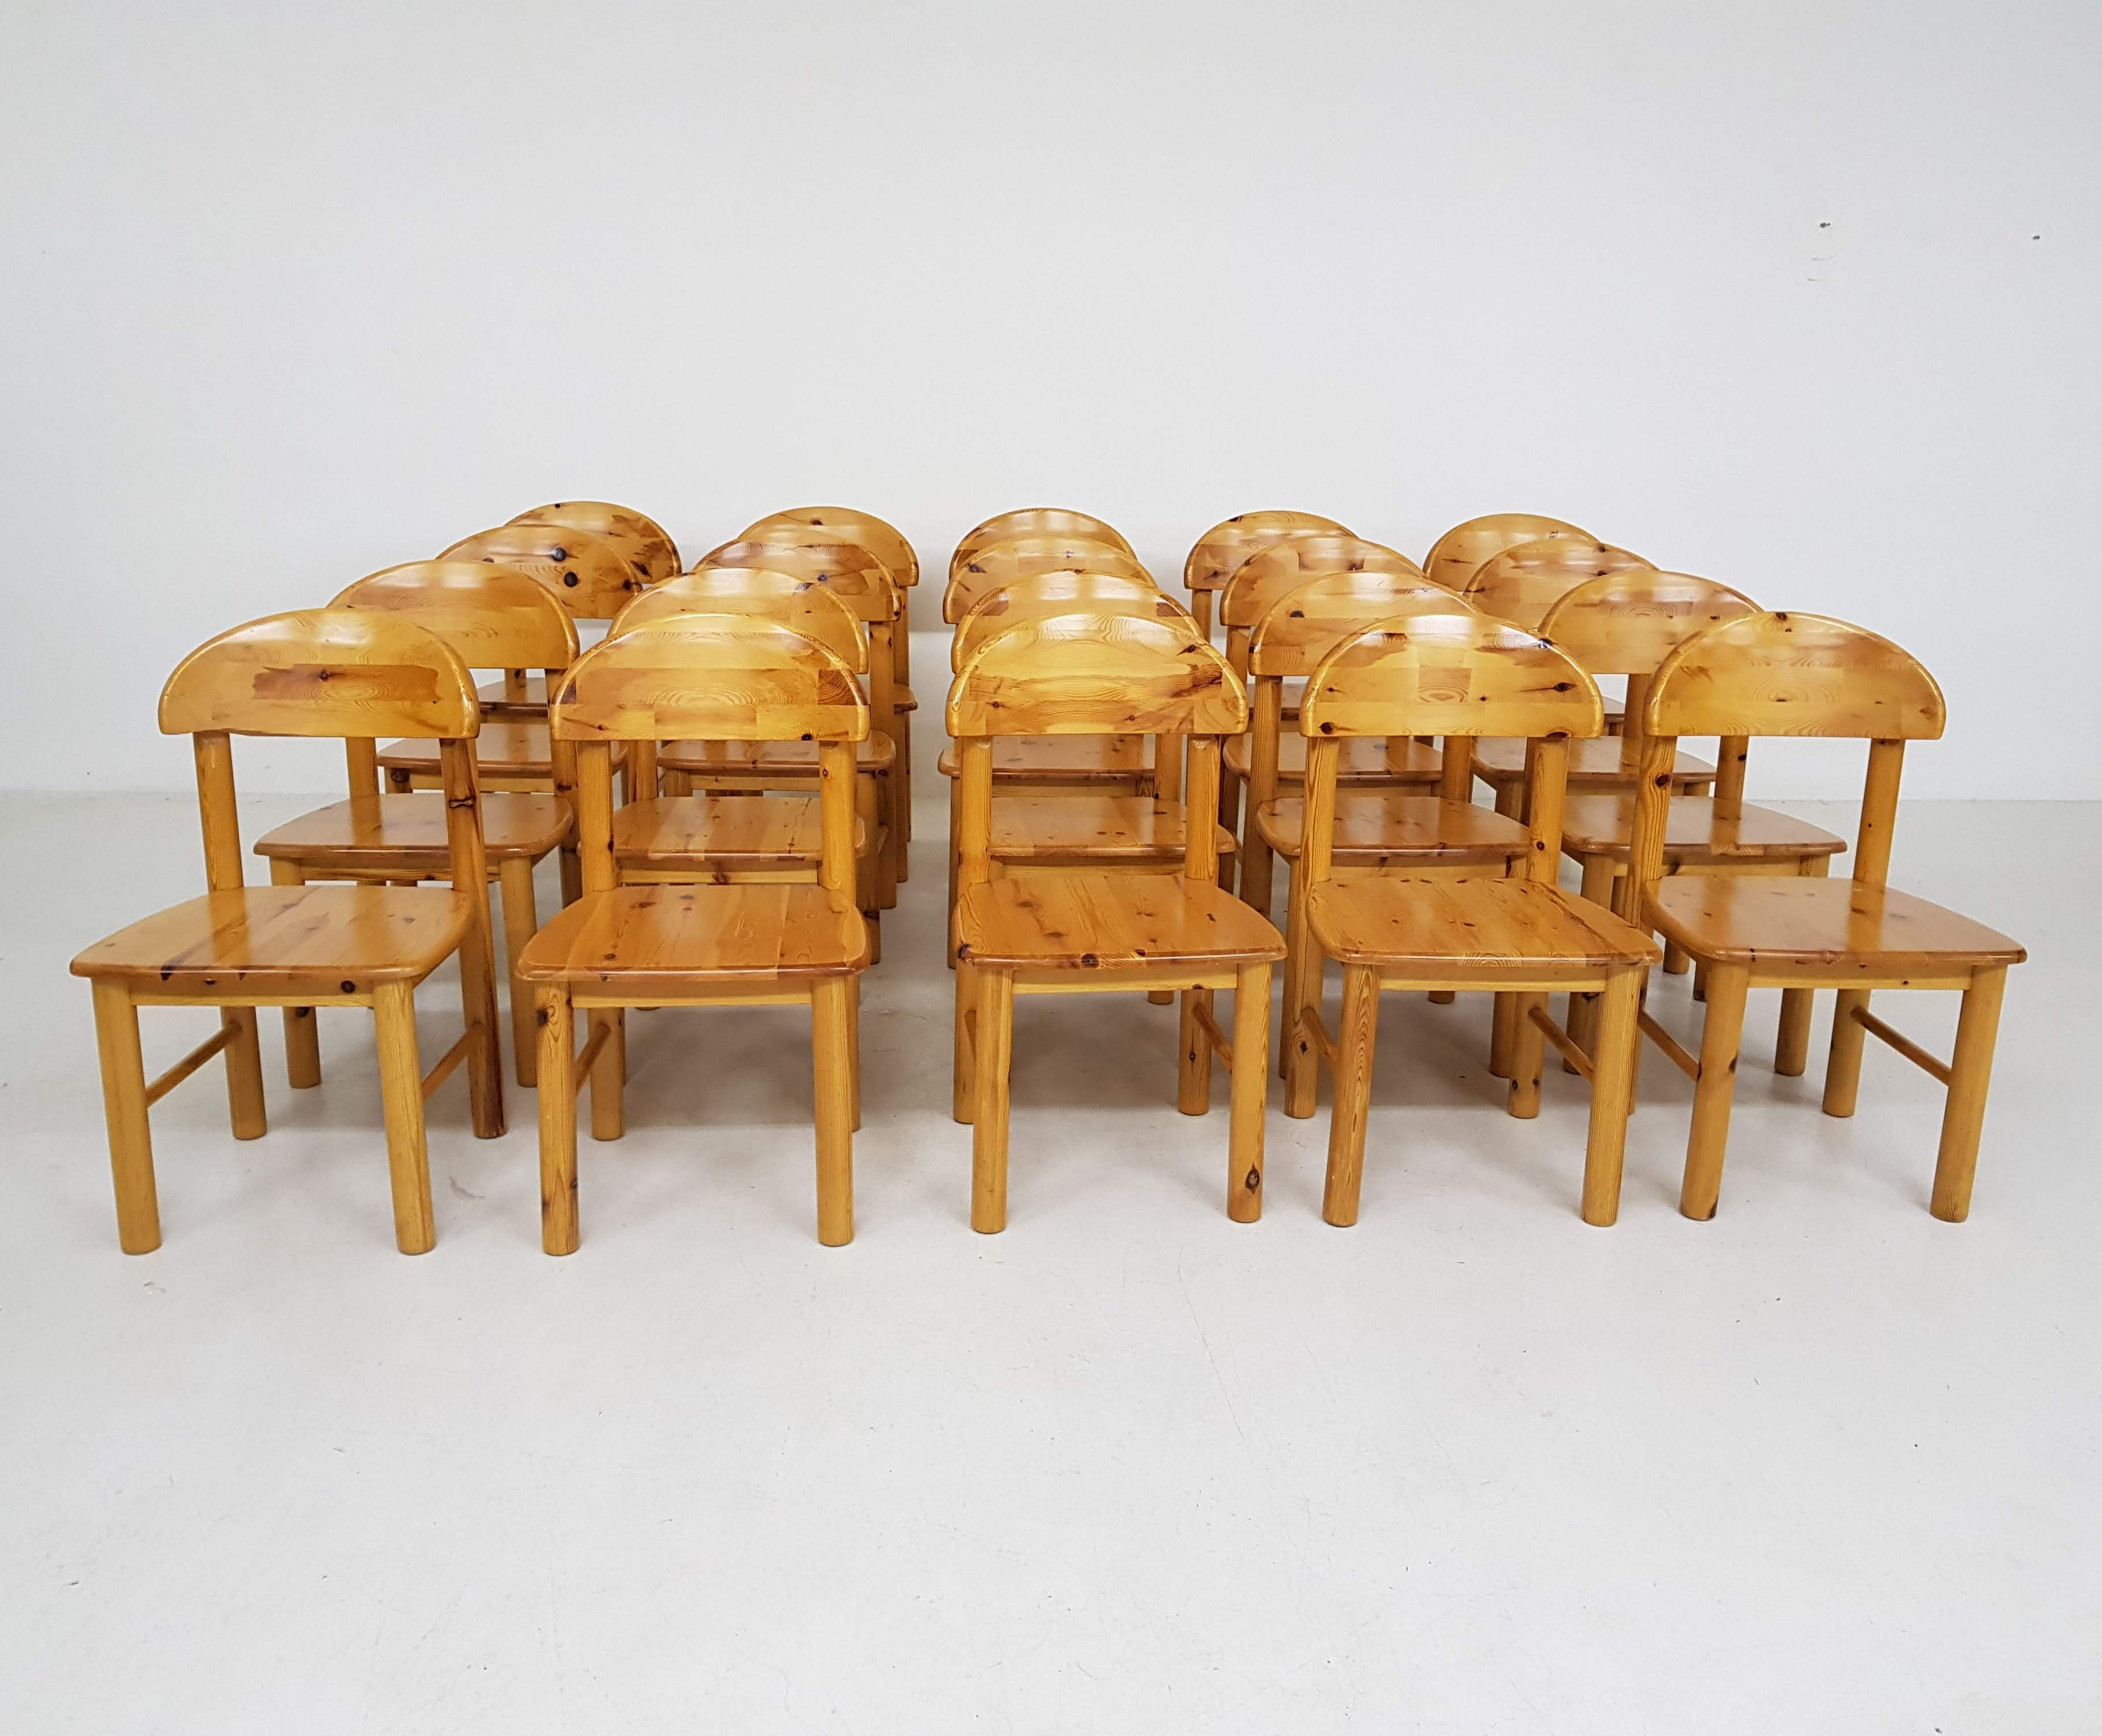 Enjoyable Set Of 20 Pinewood Dining Chairs By Rainer Daumiller 1970S Cjindustries Chair Design For Home Cjindustriesco